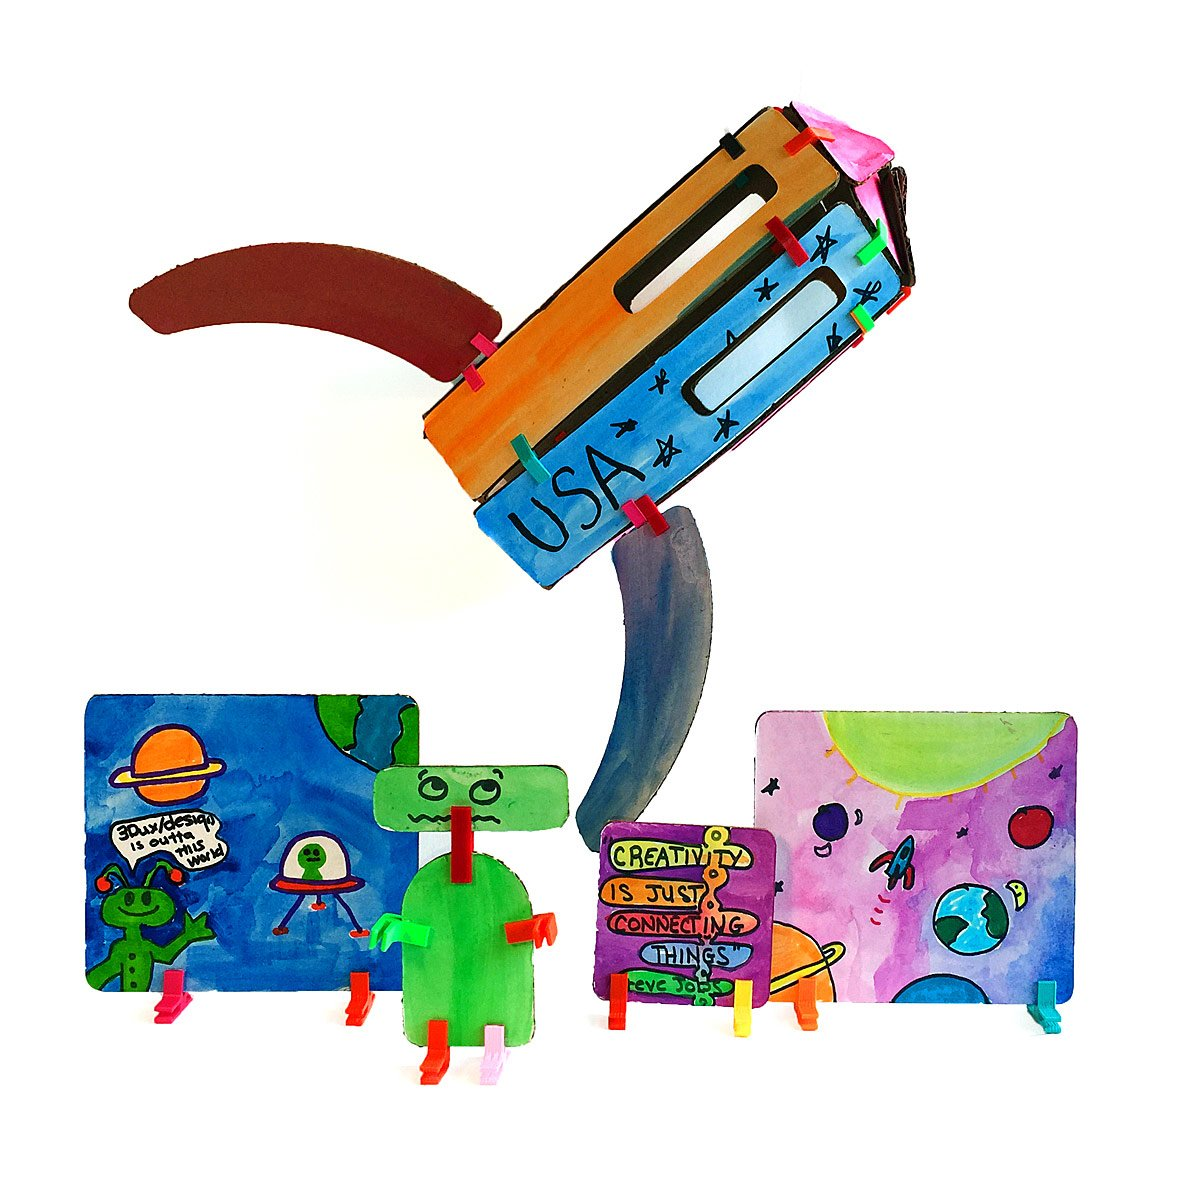 Find Every Shop In The World Selling Bwd Trailer Connector Kit Tc301 Led Light Tll16rk Optronics Wiring And Lighting Rocketship Stem Education Building Toys Space